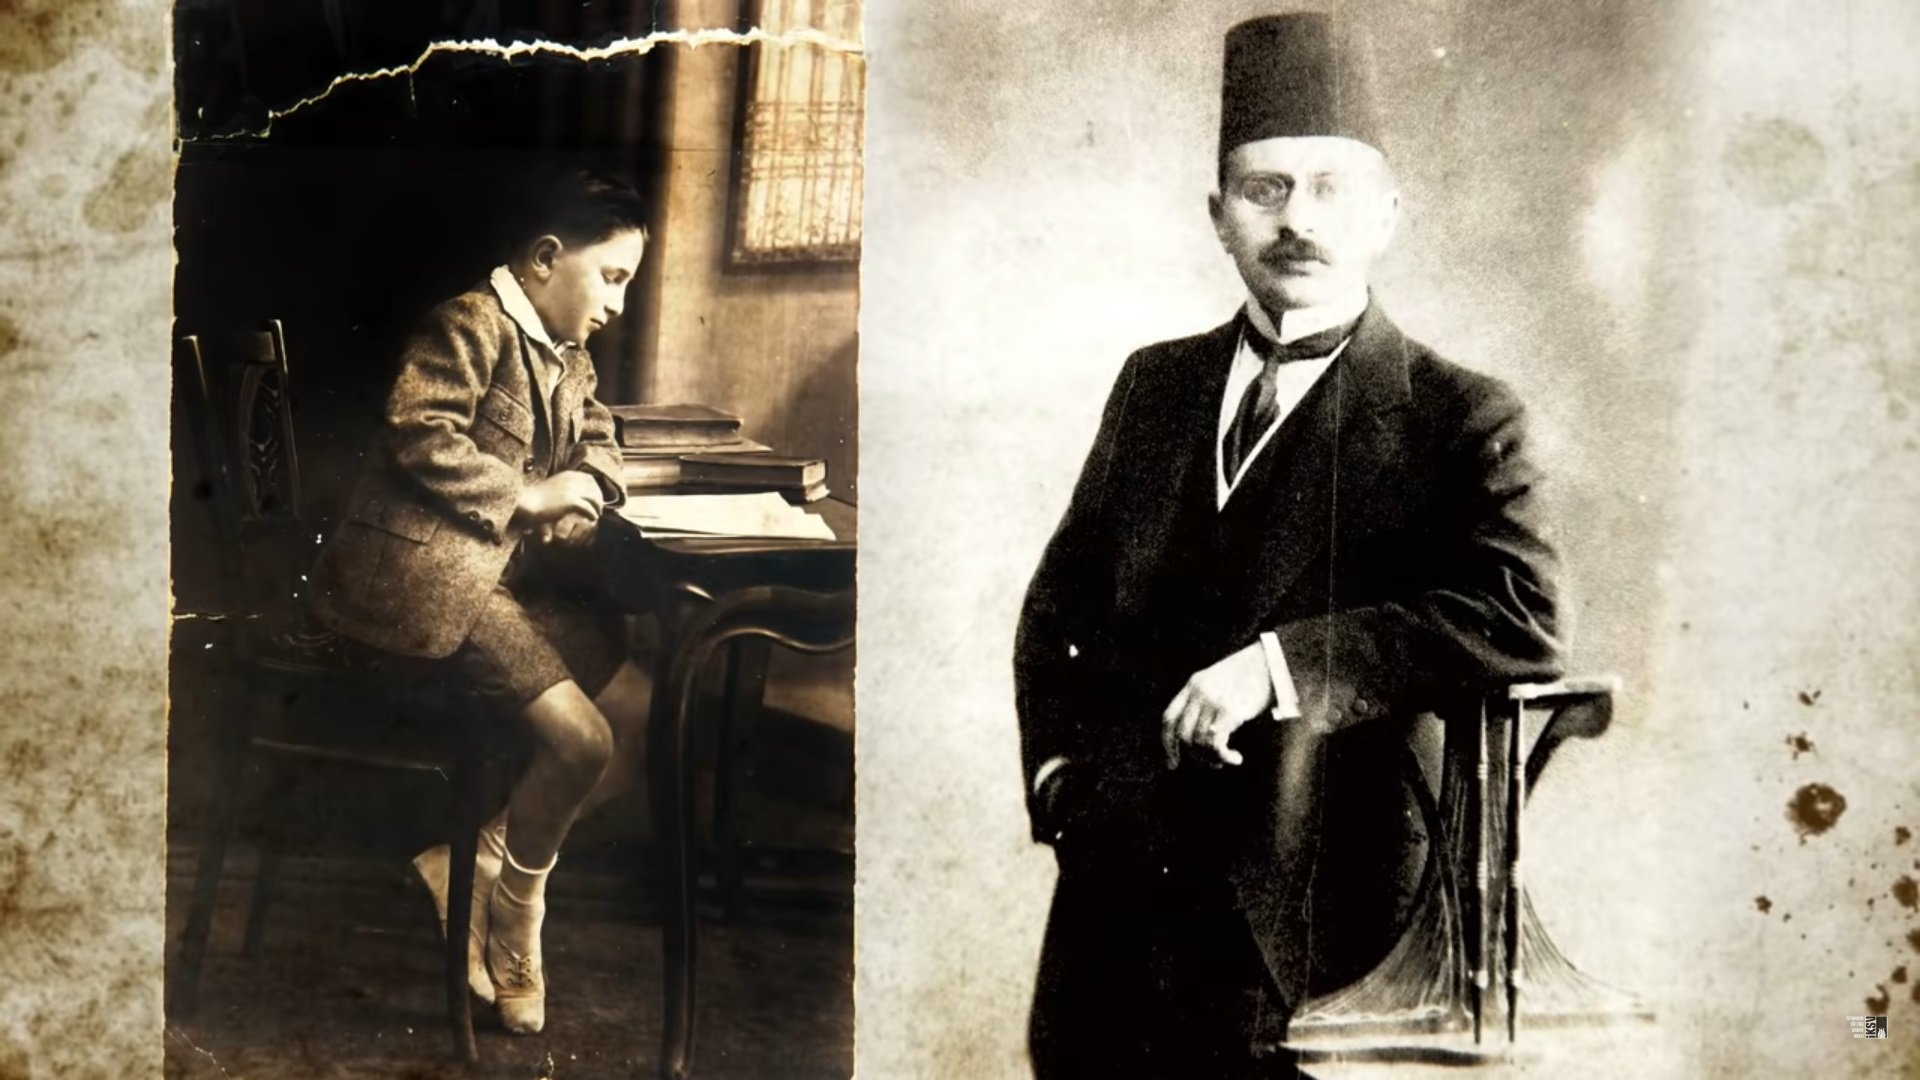 A still from the 'Ve Perde!' documentary shows Haldun Taner (L) and his father Selahaddin Bey's photos.